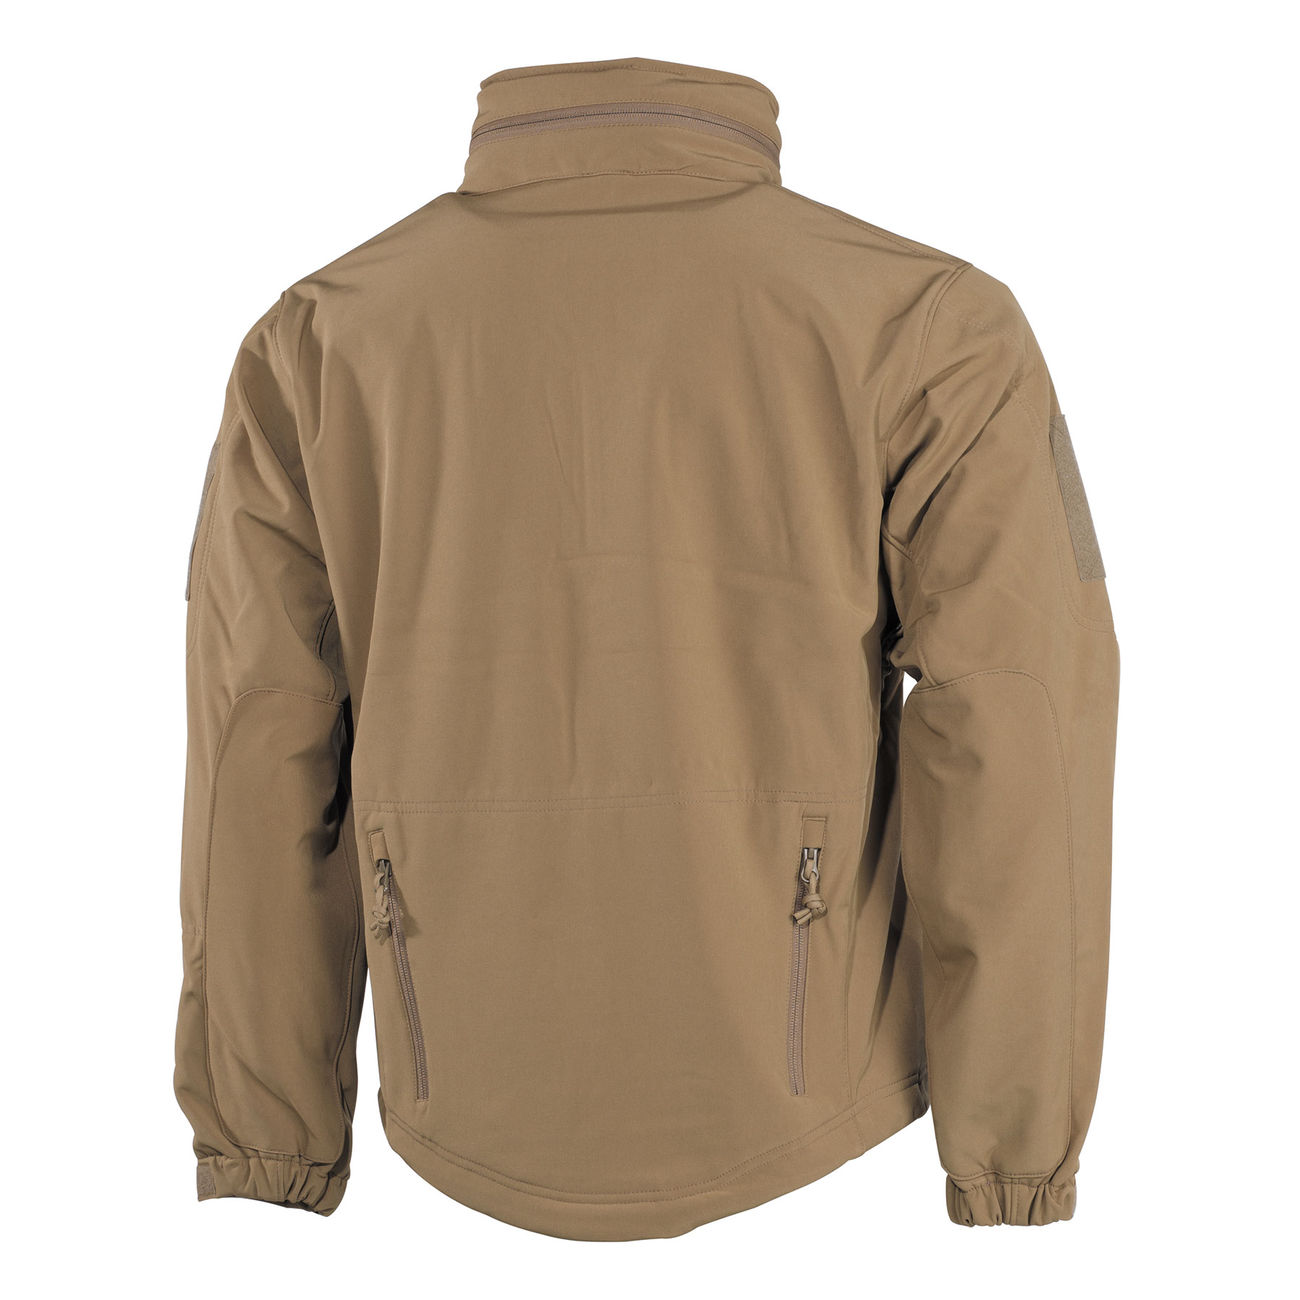 MFH Softshell Jacke Scorpion coyote 2